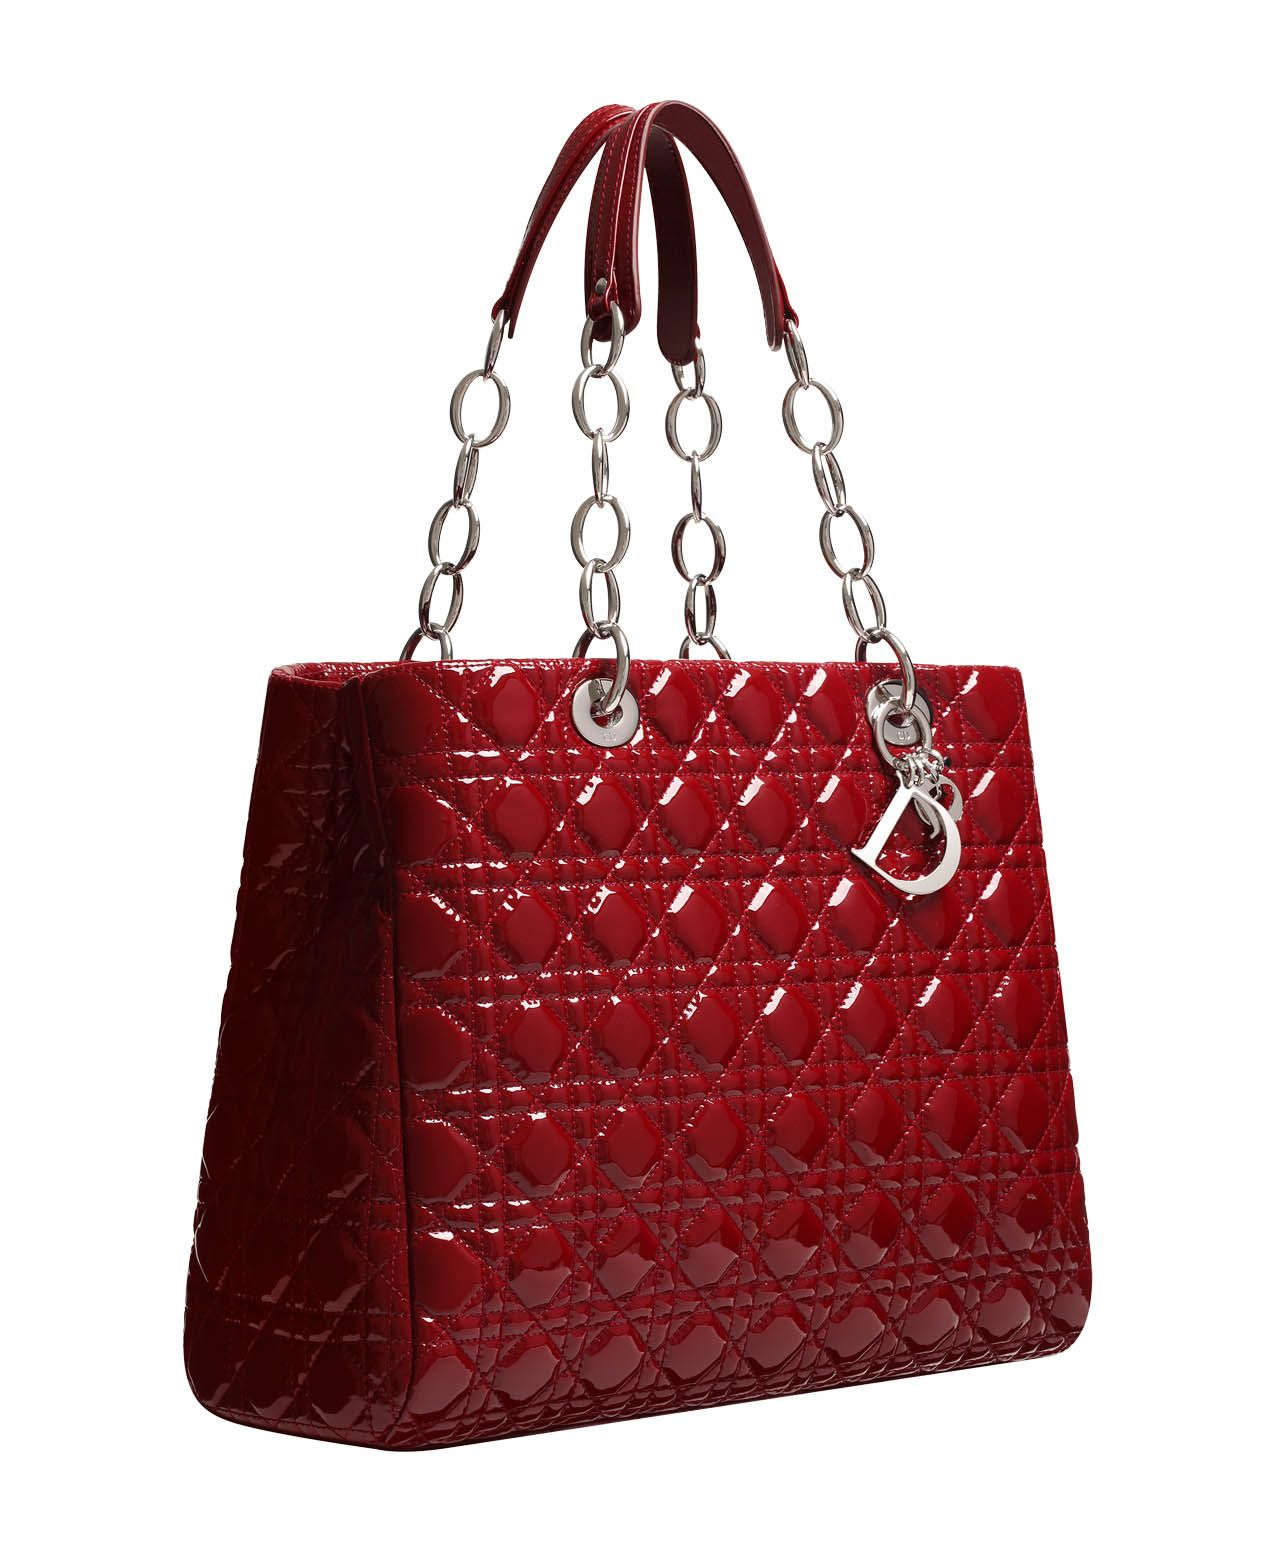 862f02557259 Cherry-red patent-leather 'Dior Soft' bag   Bags, Purses and ...